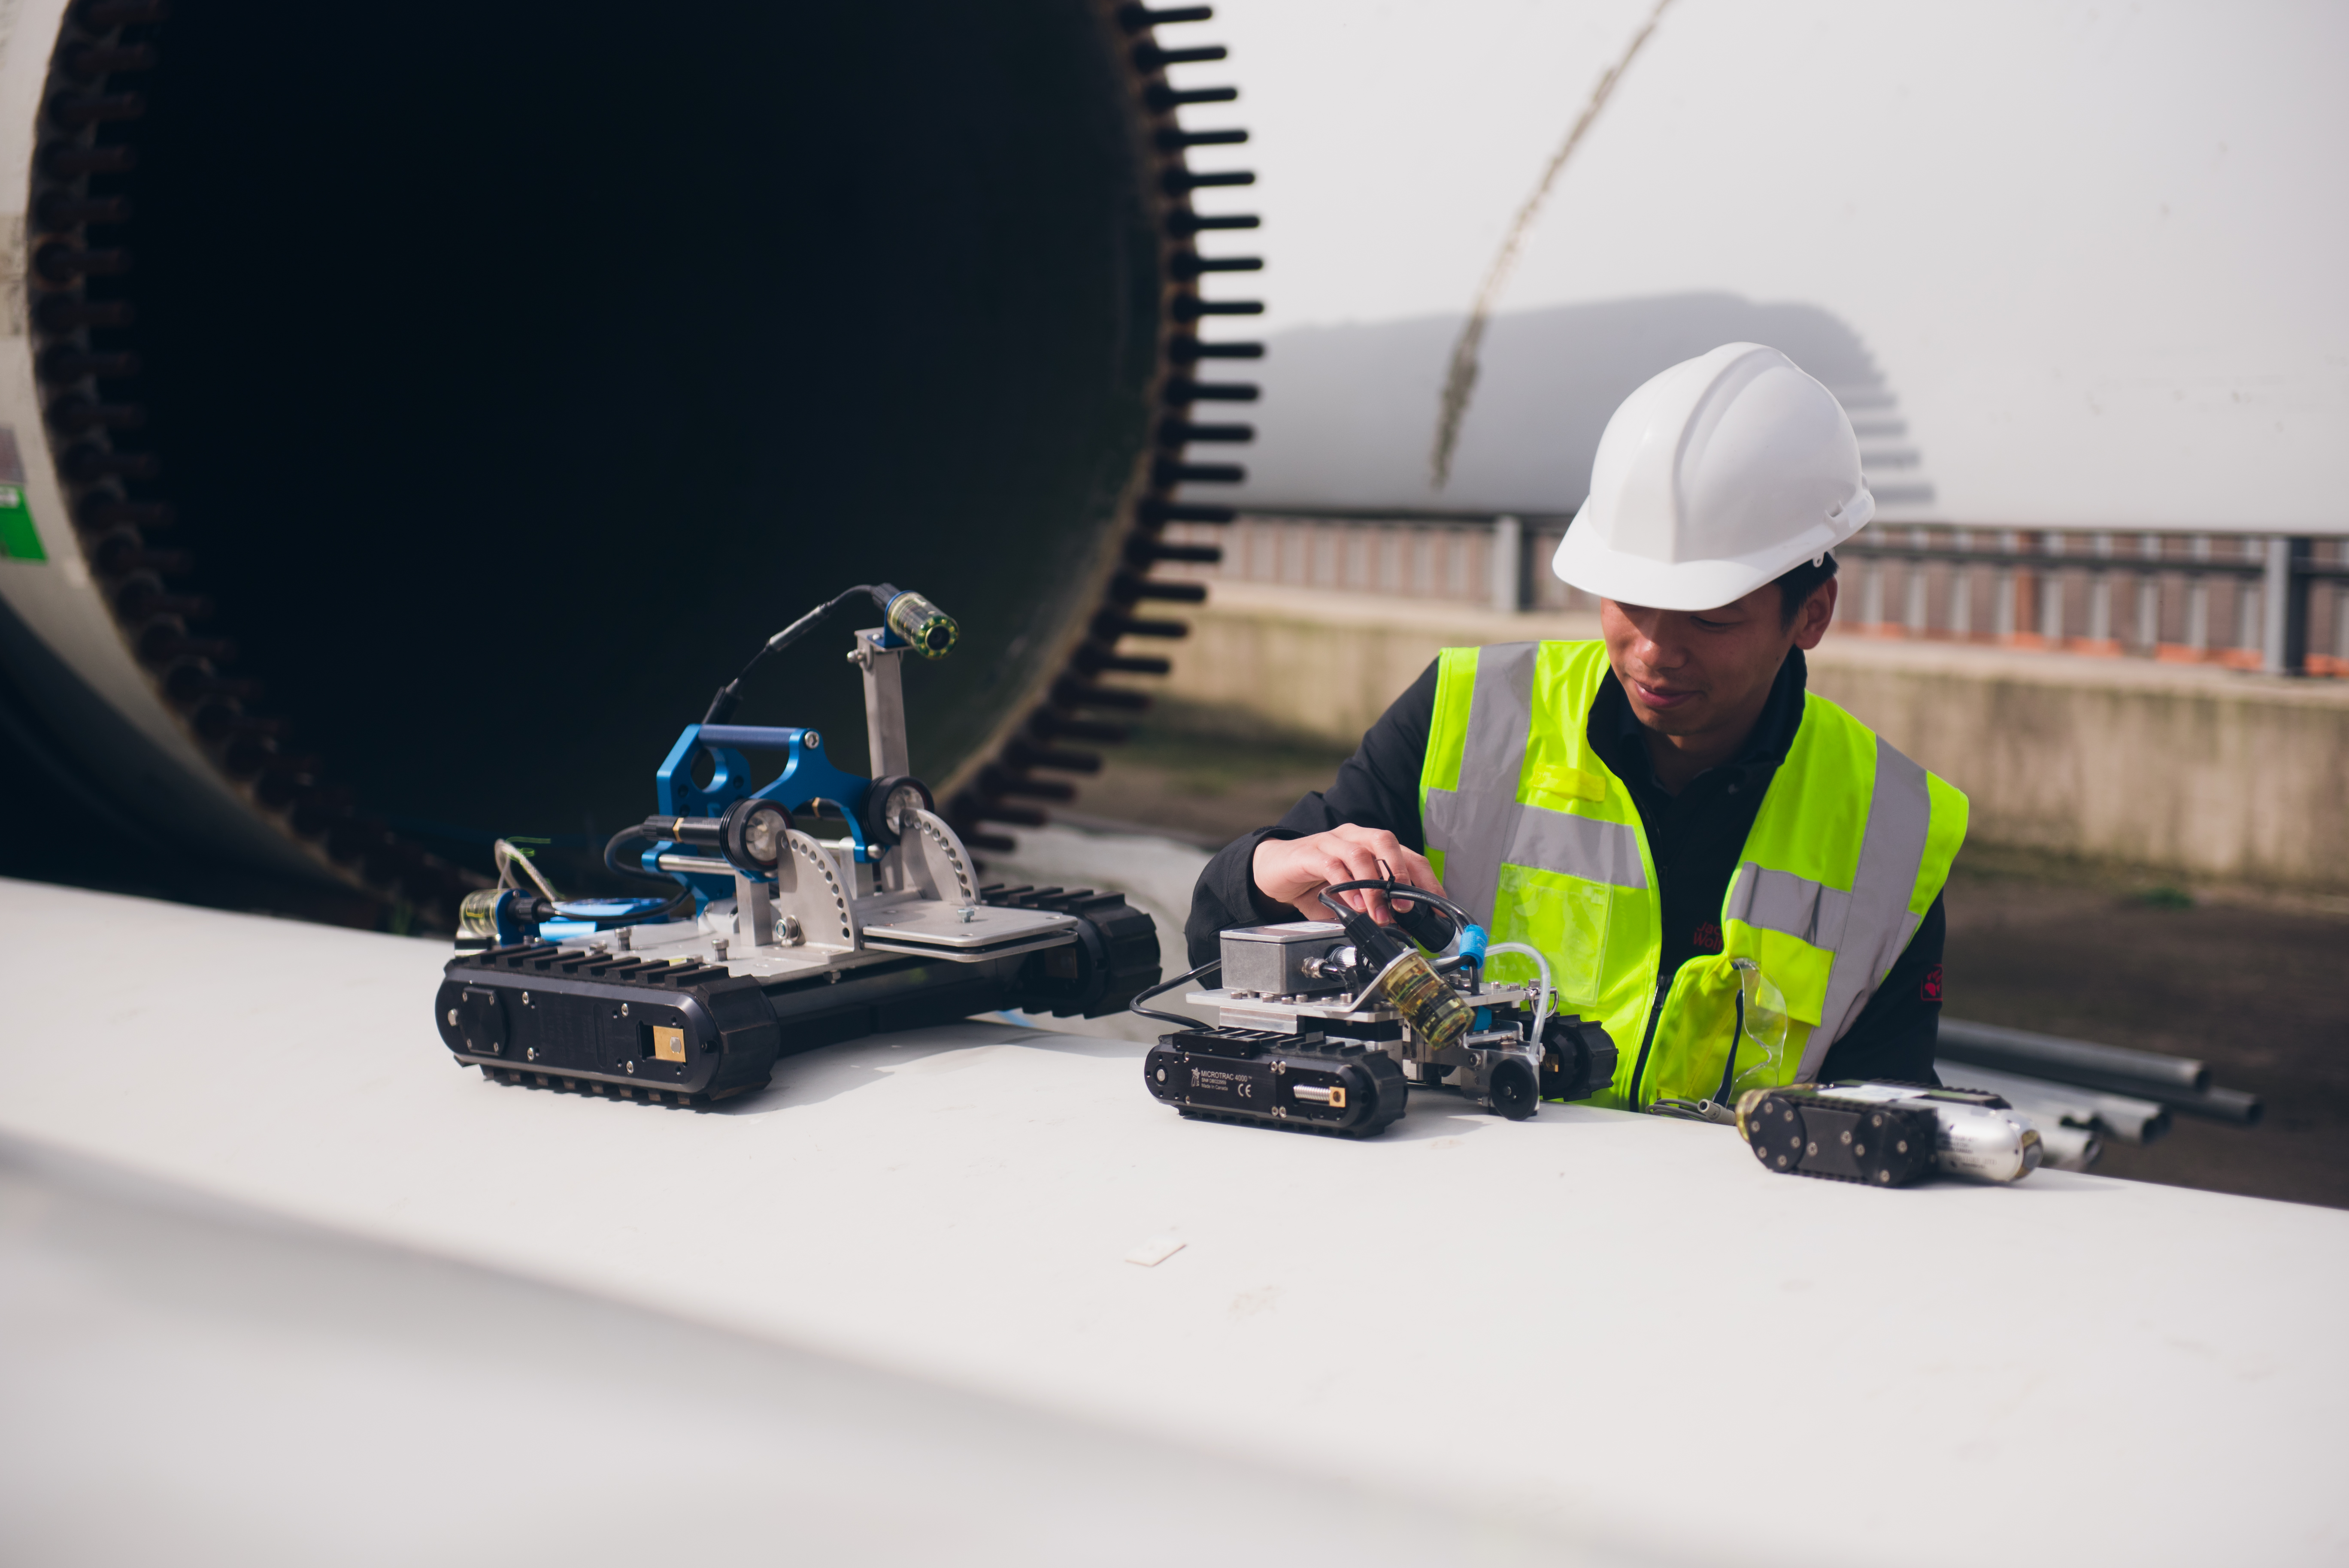 A Catapult engineer inspects ATAM Group's MagTrack robotic crawler before testing at the National Renewable Energy Centre in Blyth.